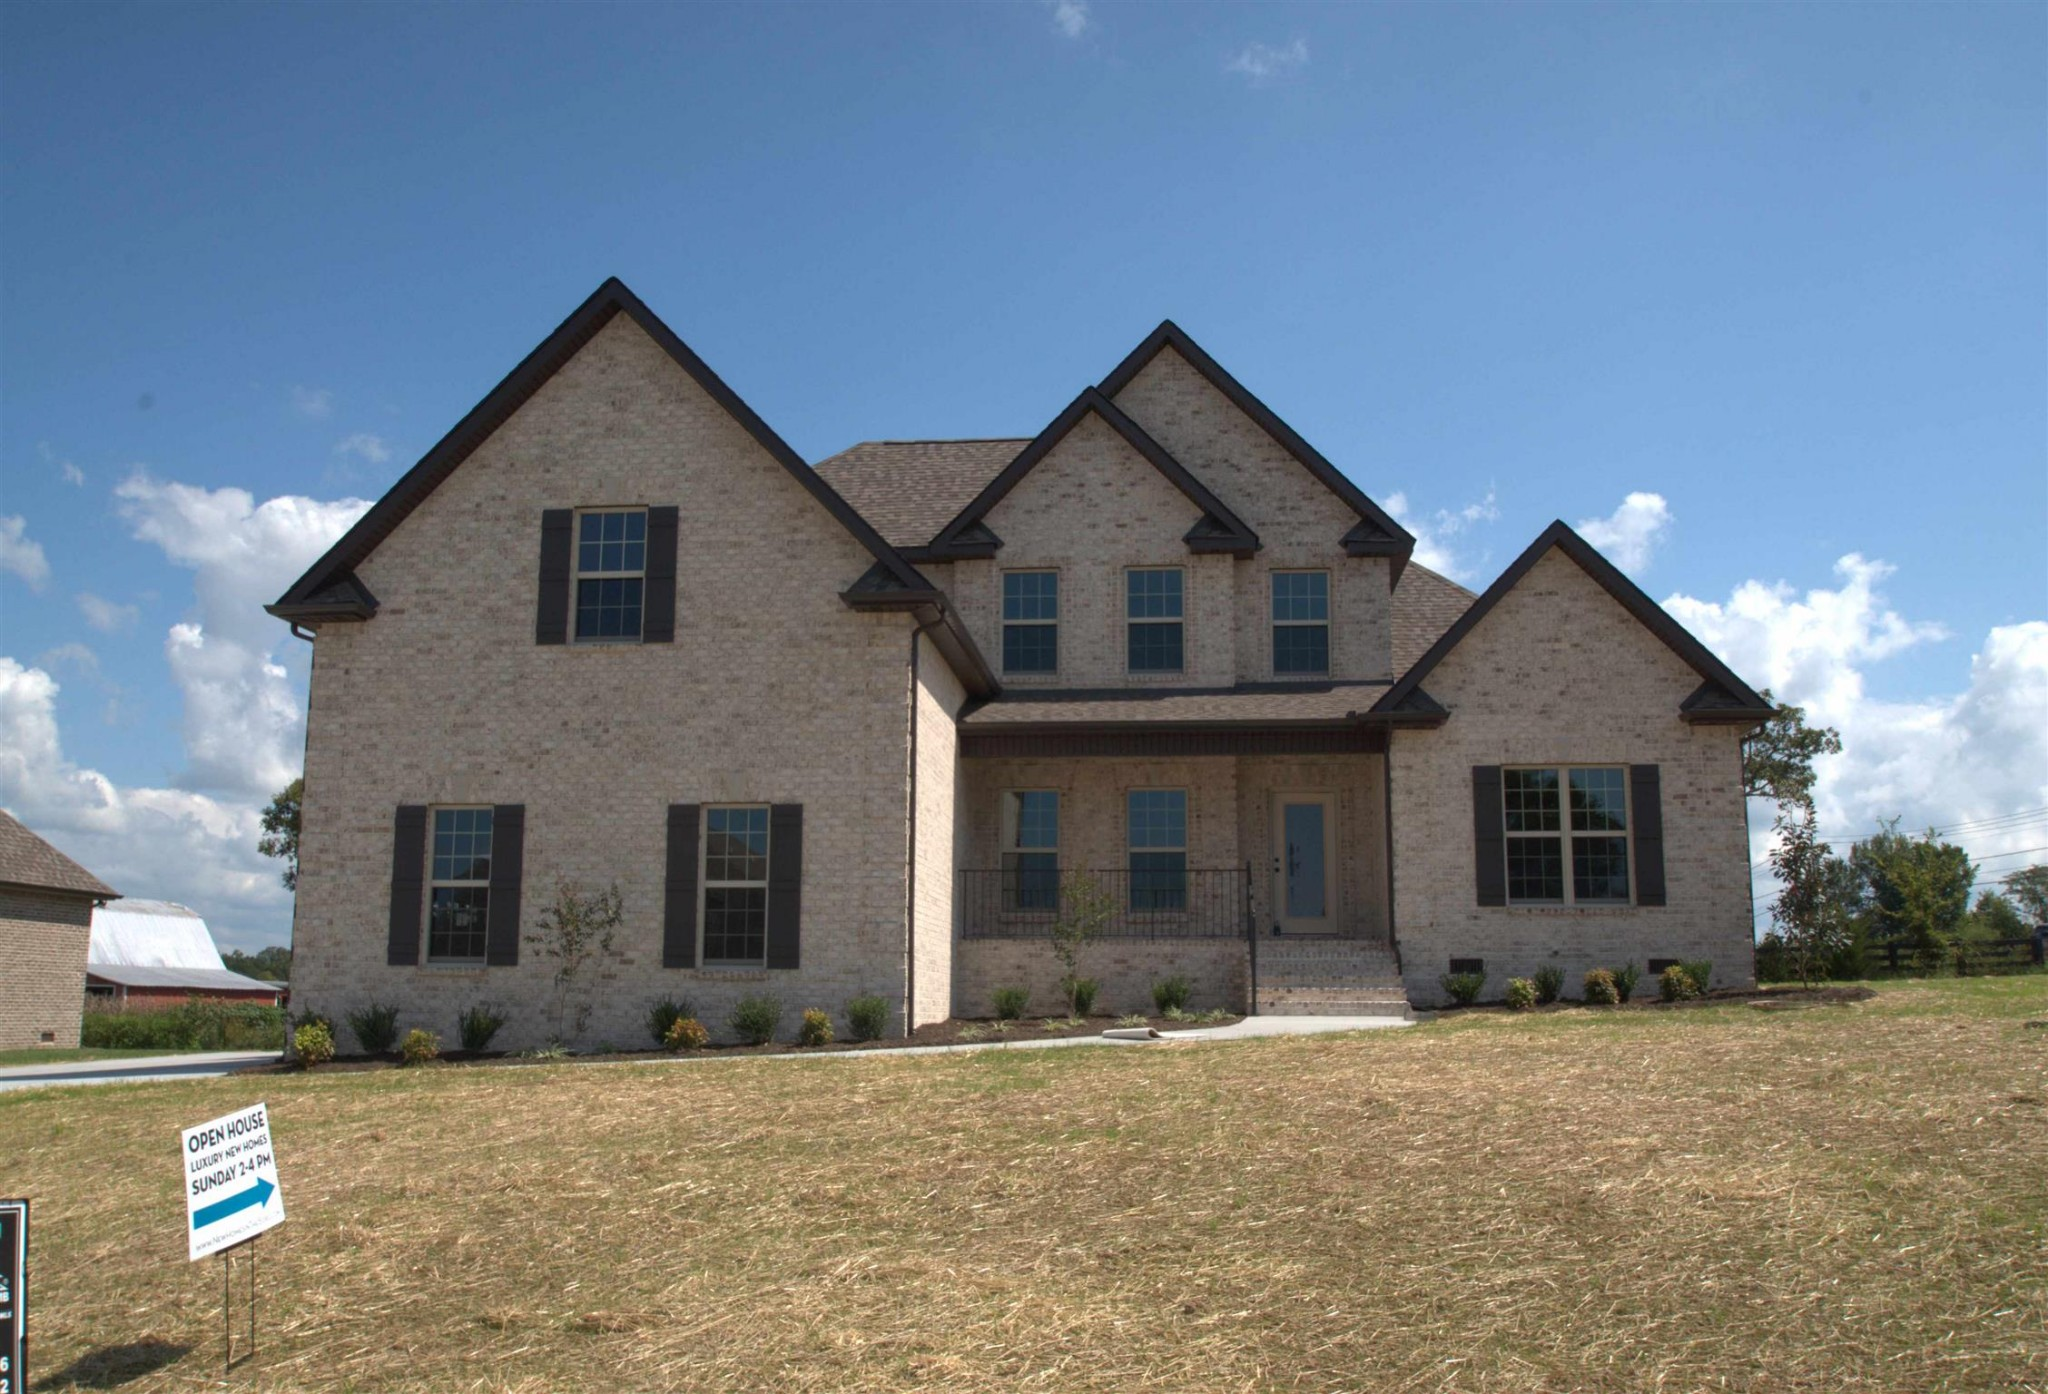 1109 Alex Walker Dr Property Photo - Christiana, TN real estate listing